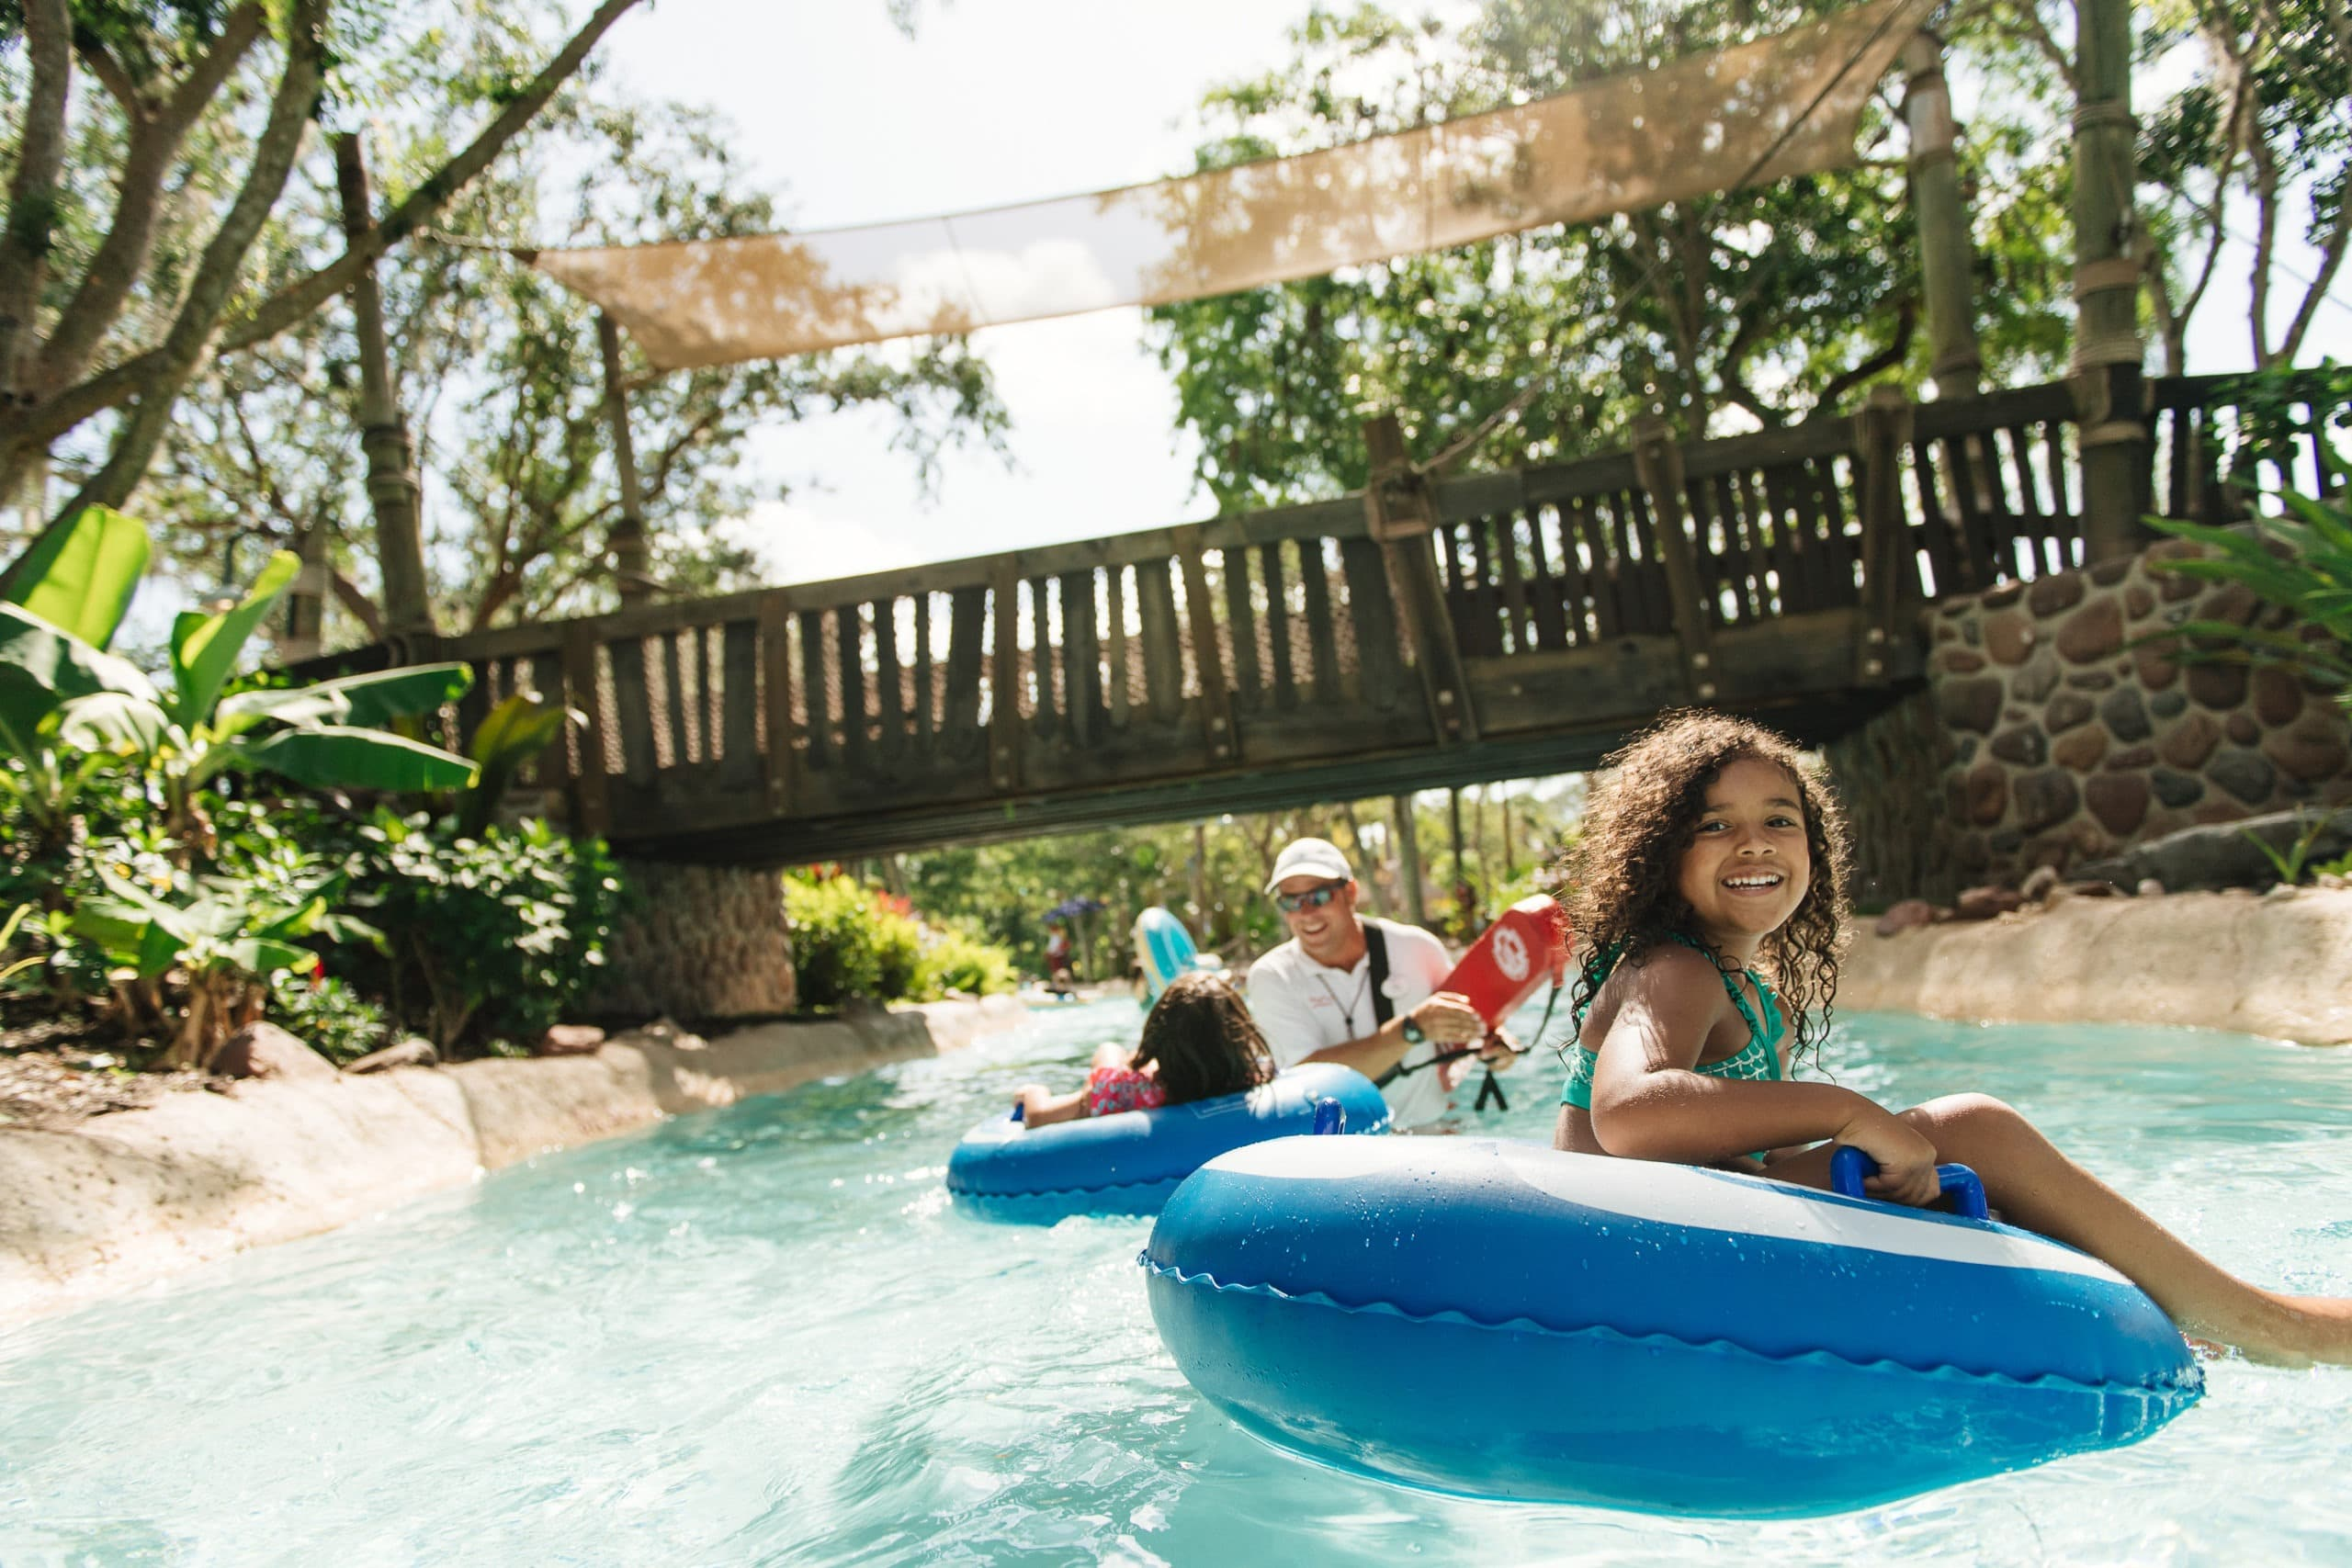 A girl floats down the lazy river in an inner tube at Blizzard Beach.